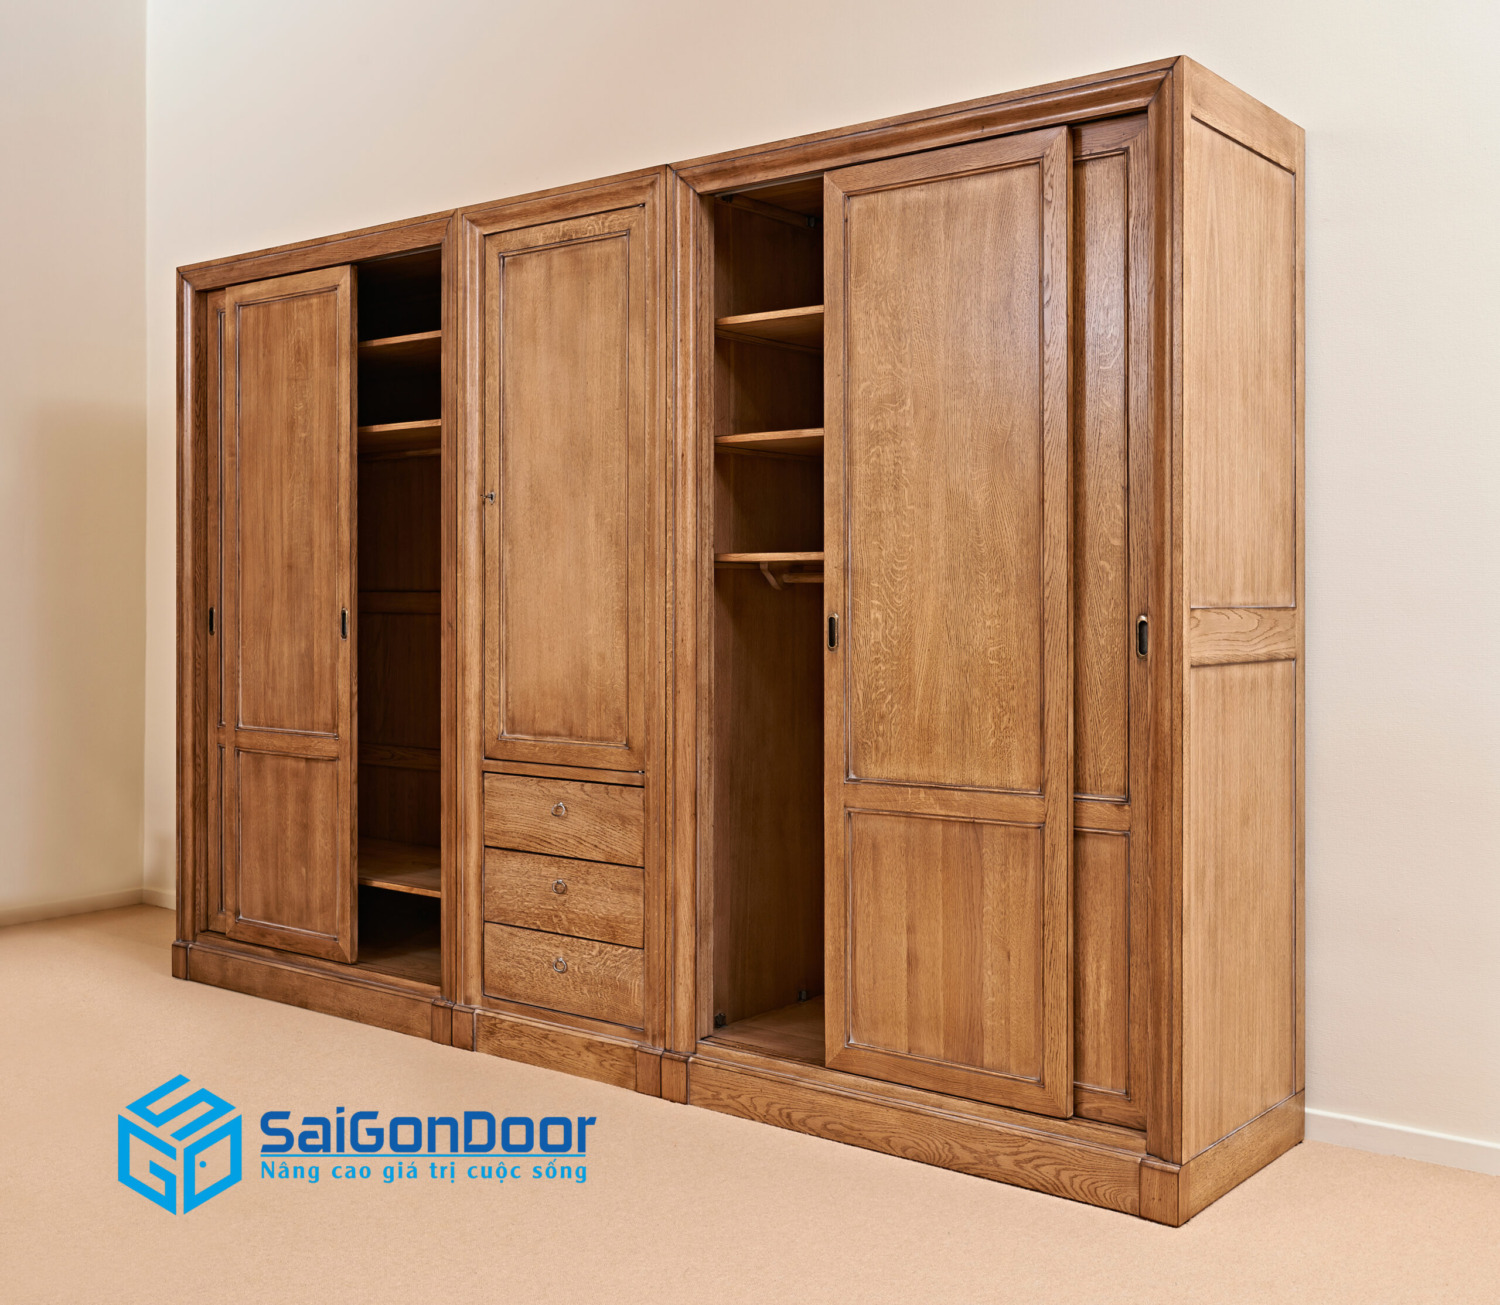 opened classical wooden wardrobe against textured wall scaled